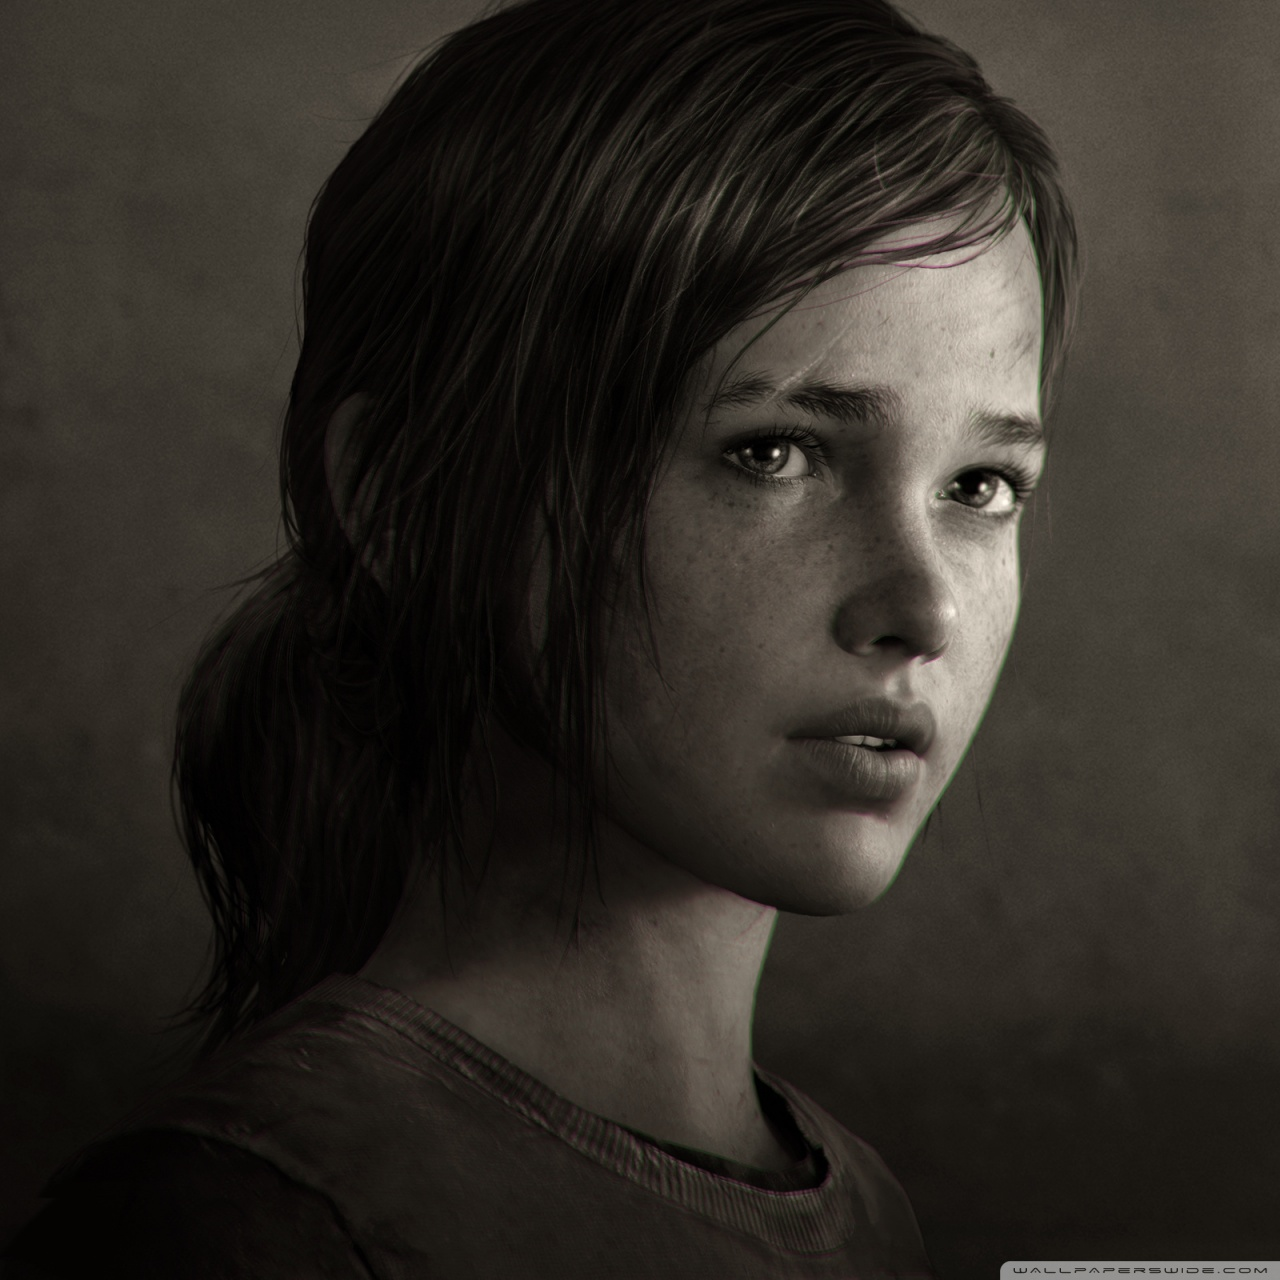 The Last Of Us 2 Wallpaper 4k Posted By Zoey Walker